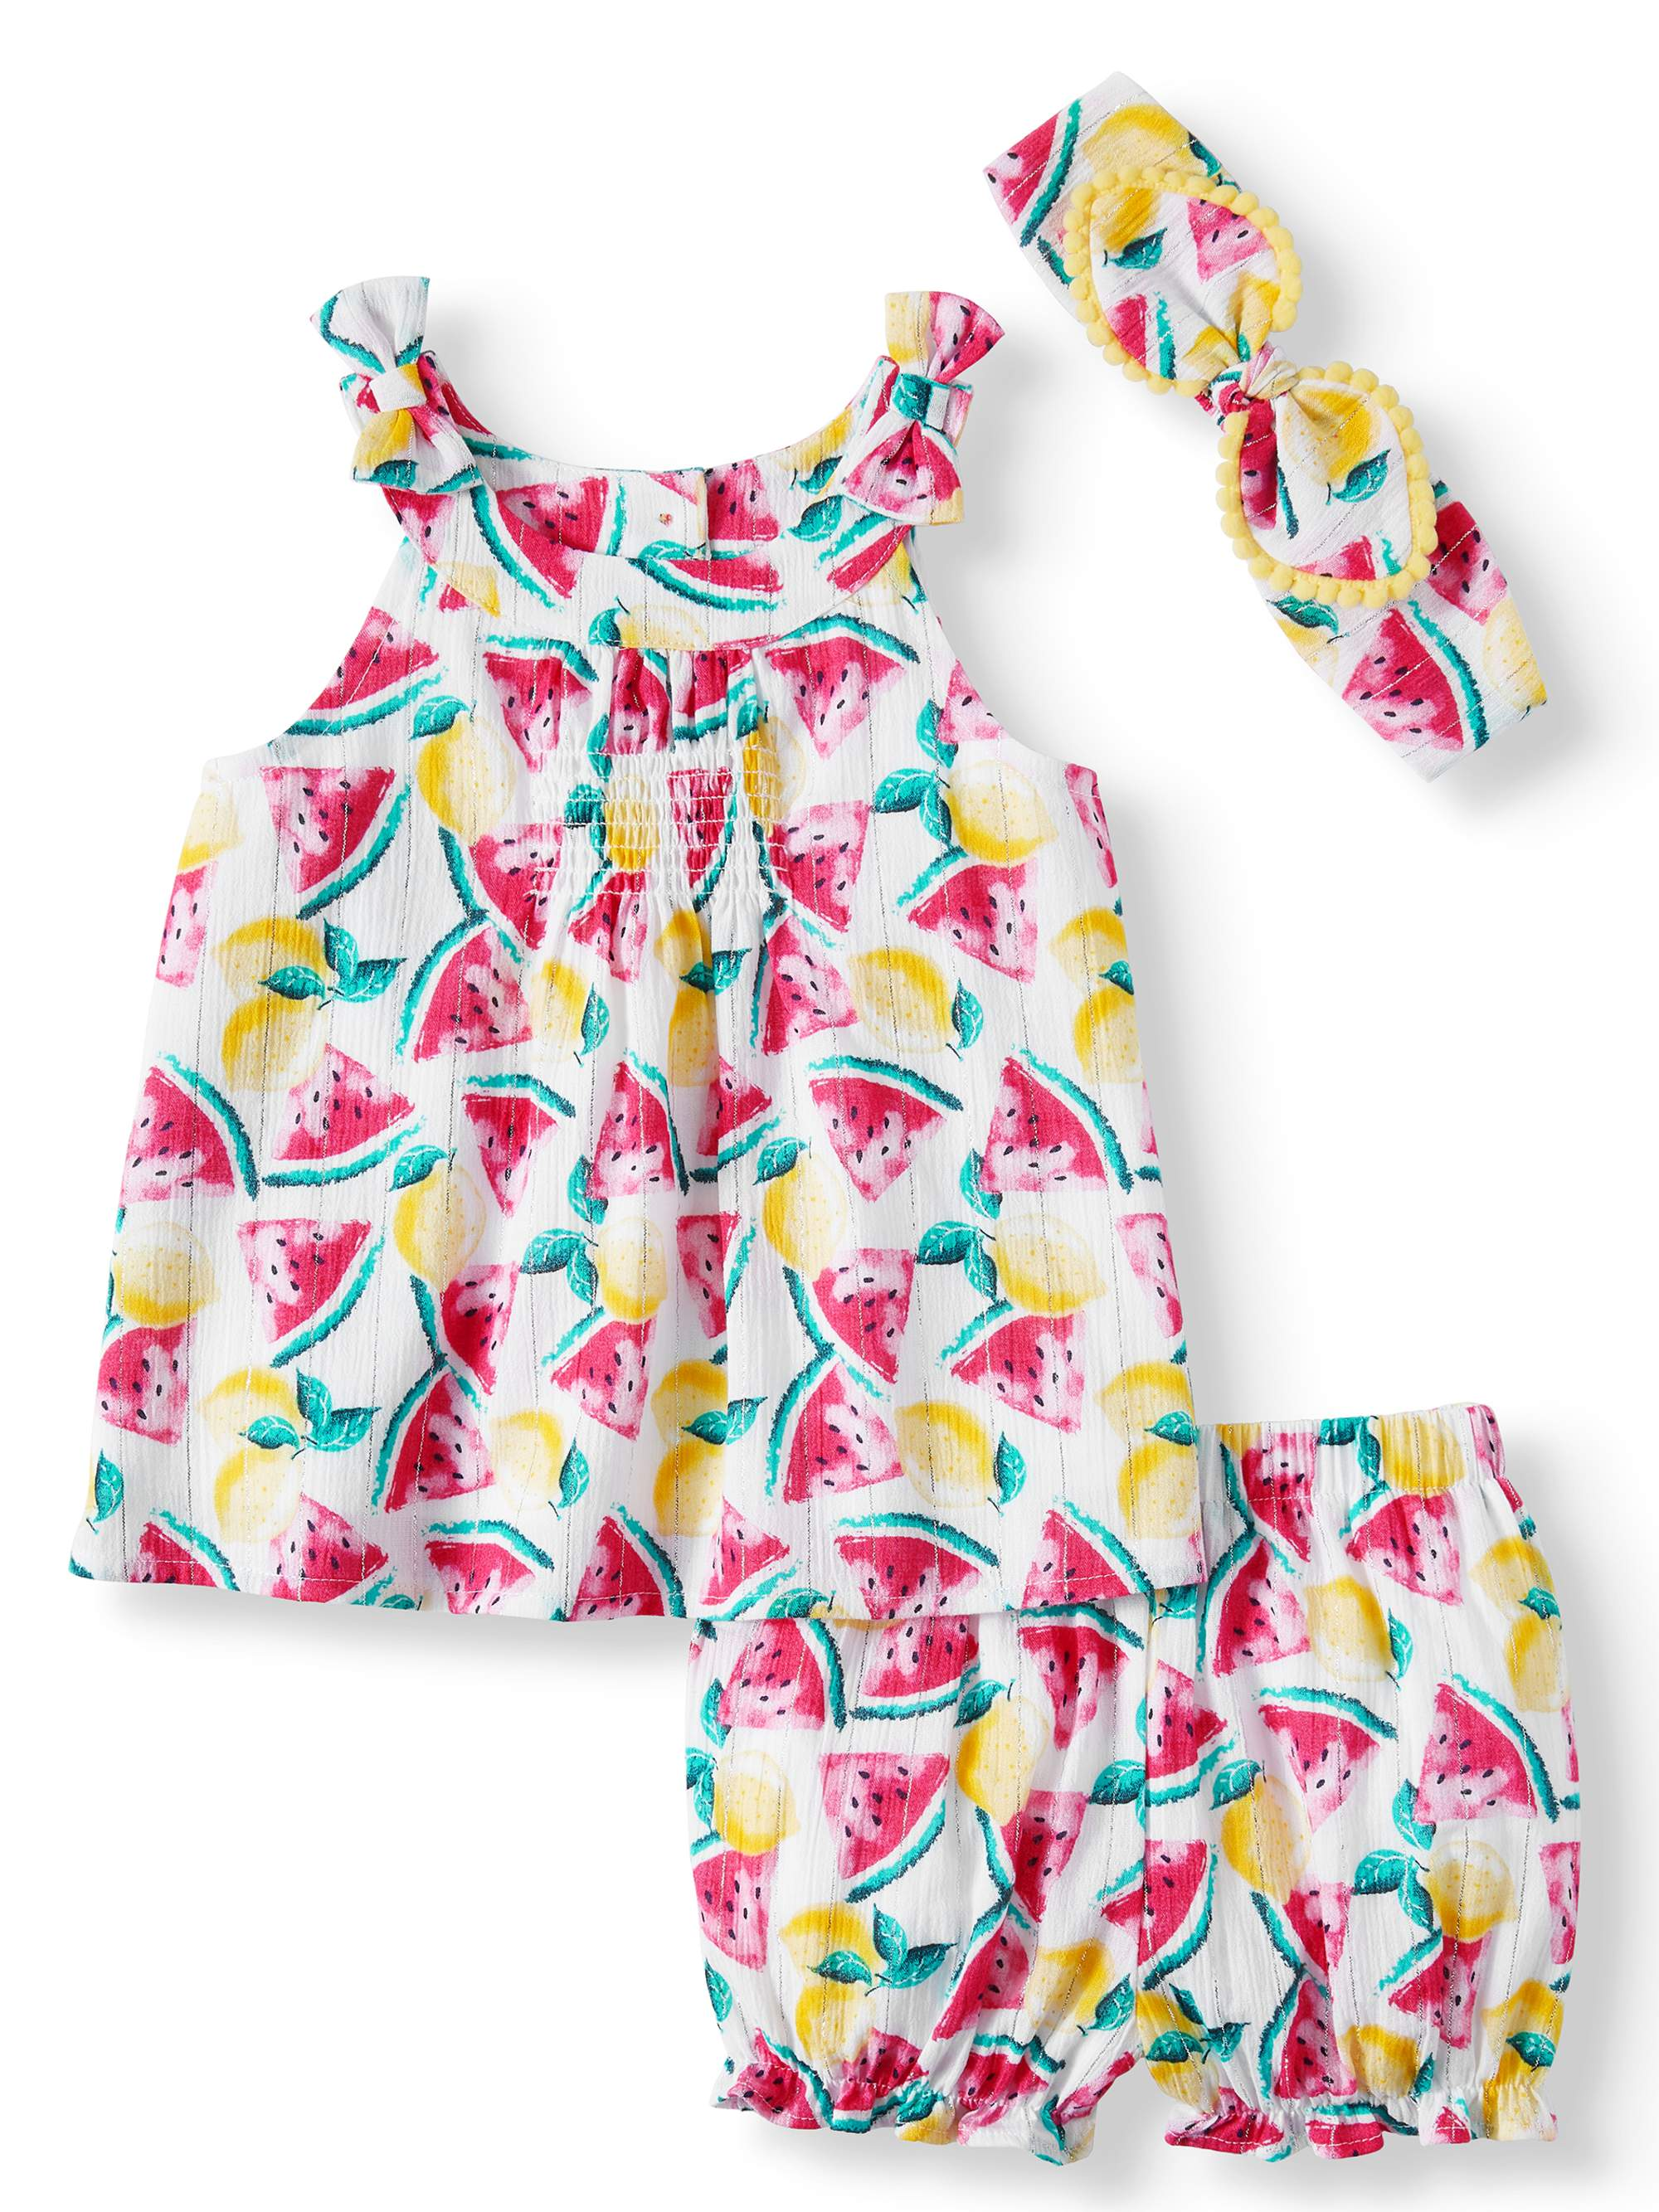 Baby Girls' Printed Woven Babydoll Top, Diaper Cover and Headband, 3-Piece Set